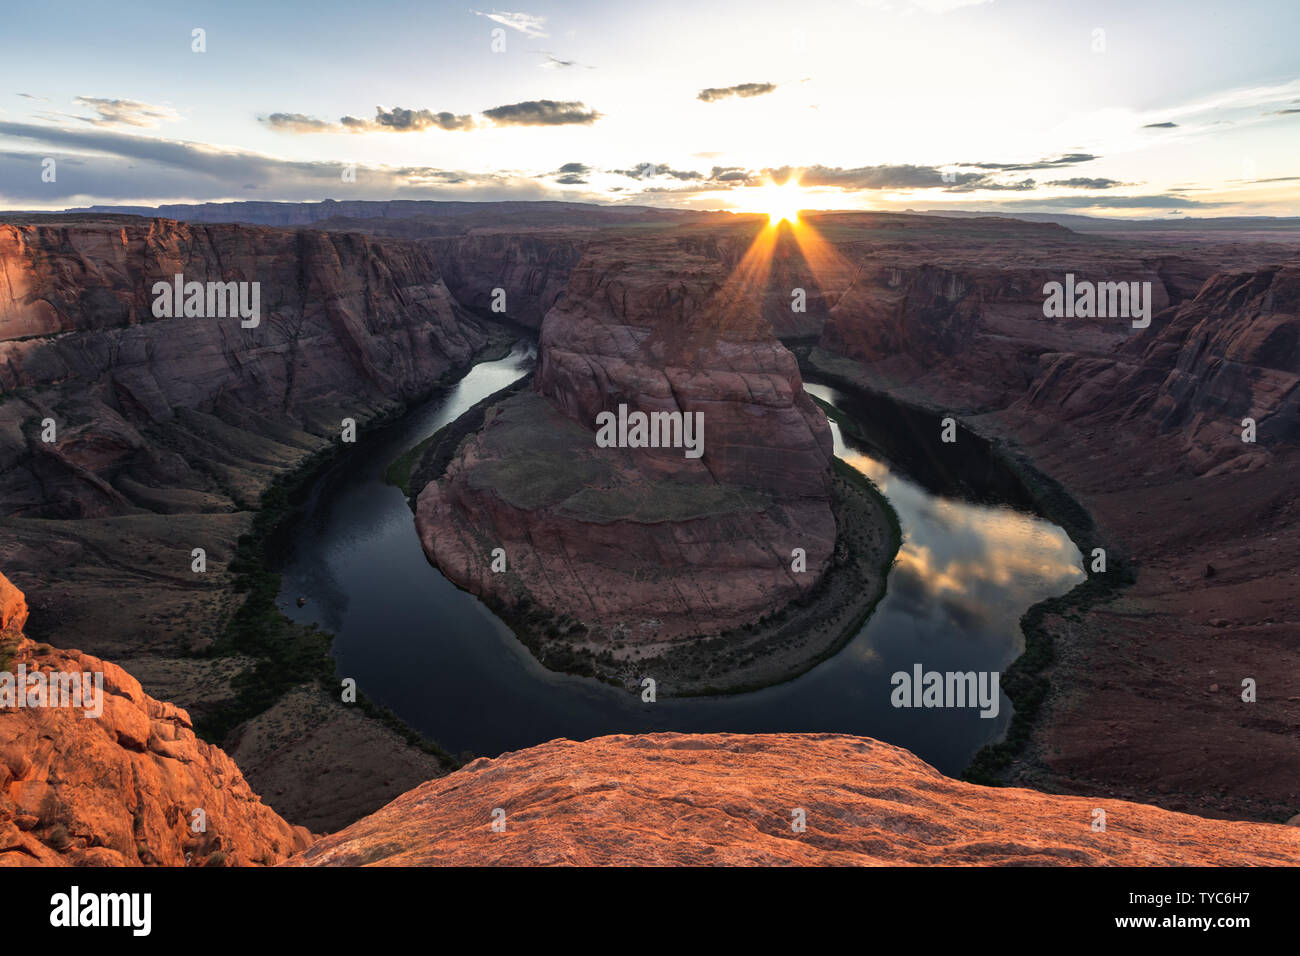 Horseshoe Bend is a horseshoe-shaped incised meander of the Colorado River located near the town of Page, Arizona, United States. It is very popular p Stock Photo